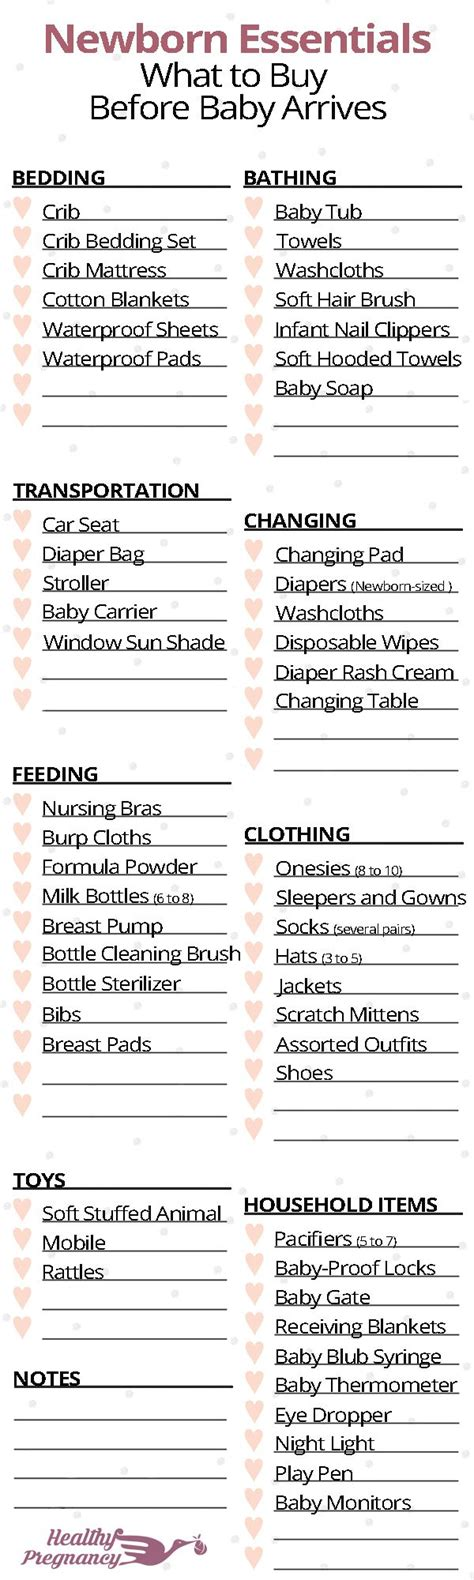 essential household items to stock up before baby arrives best 25 newborn baby essentials ideas on pinterest